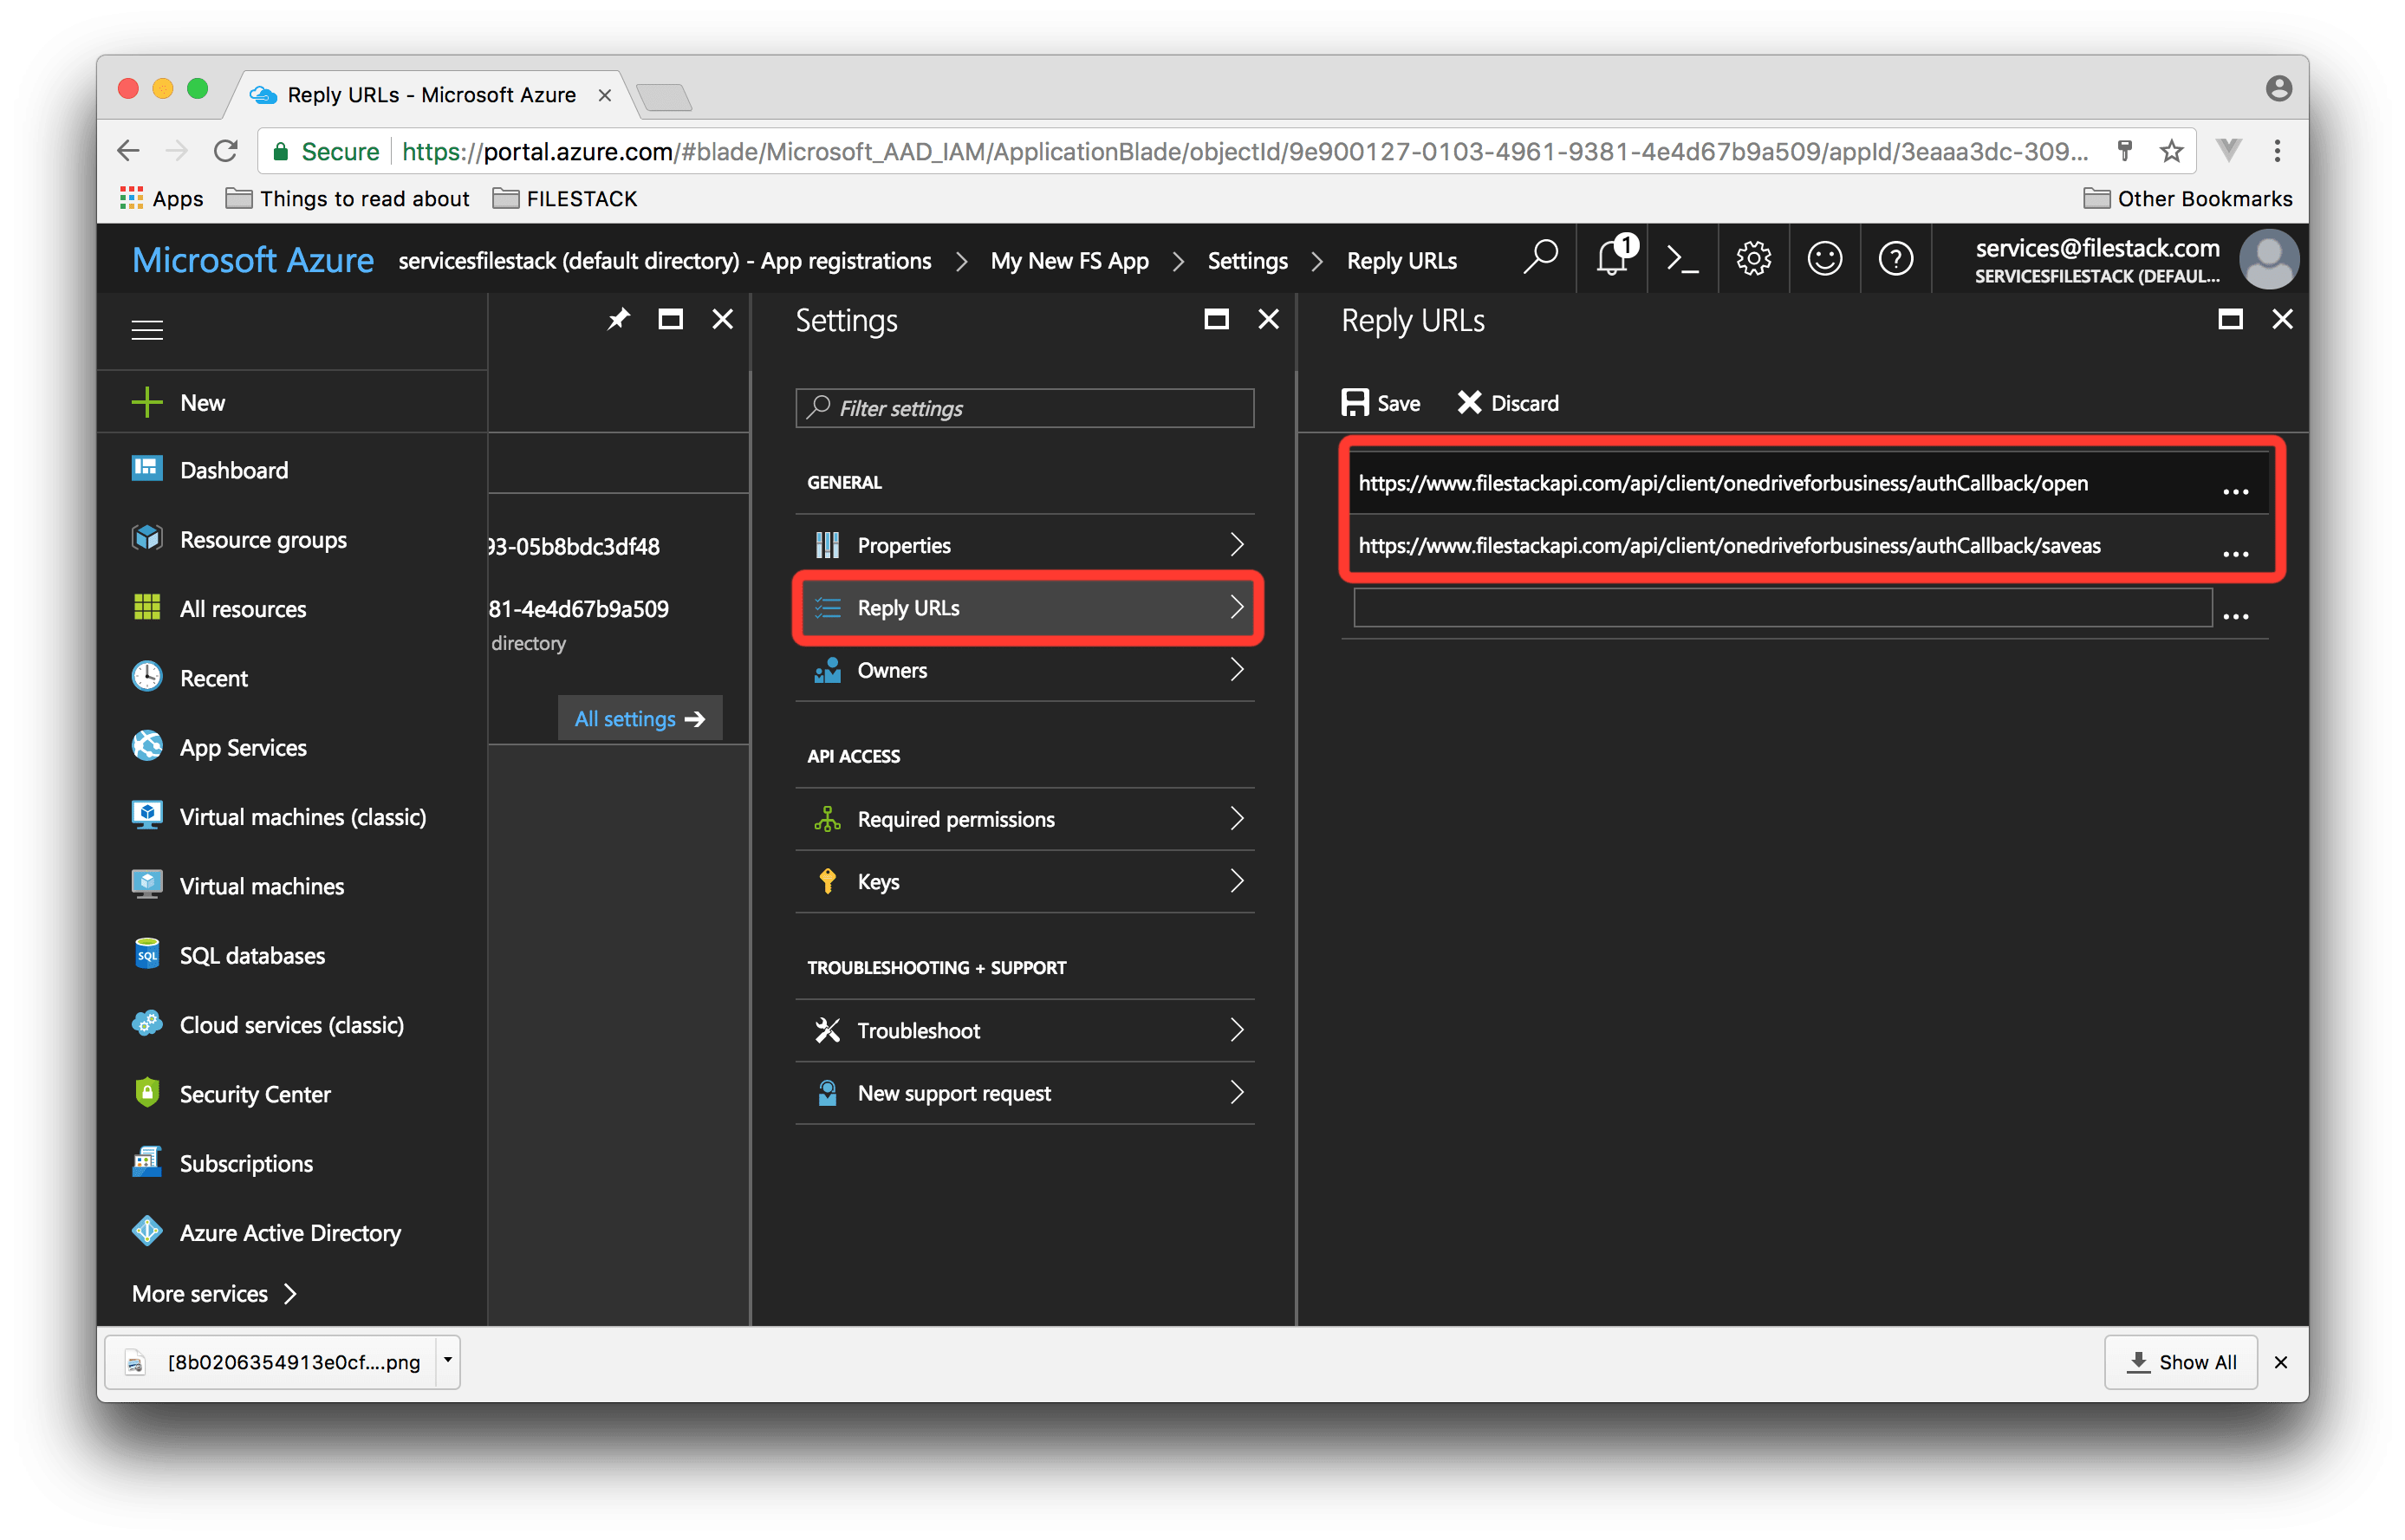 Screenshot showing Microsoft Azure Reply URLs